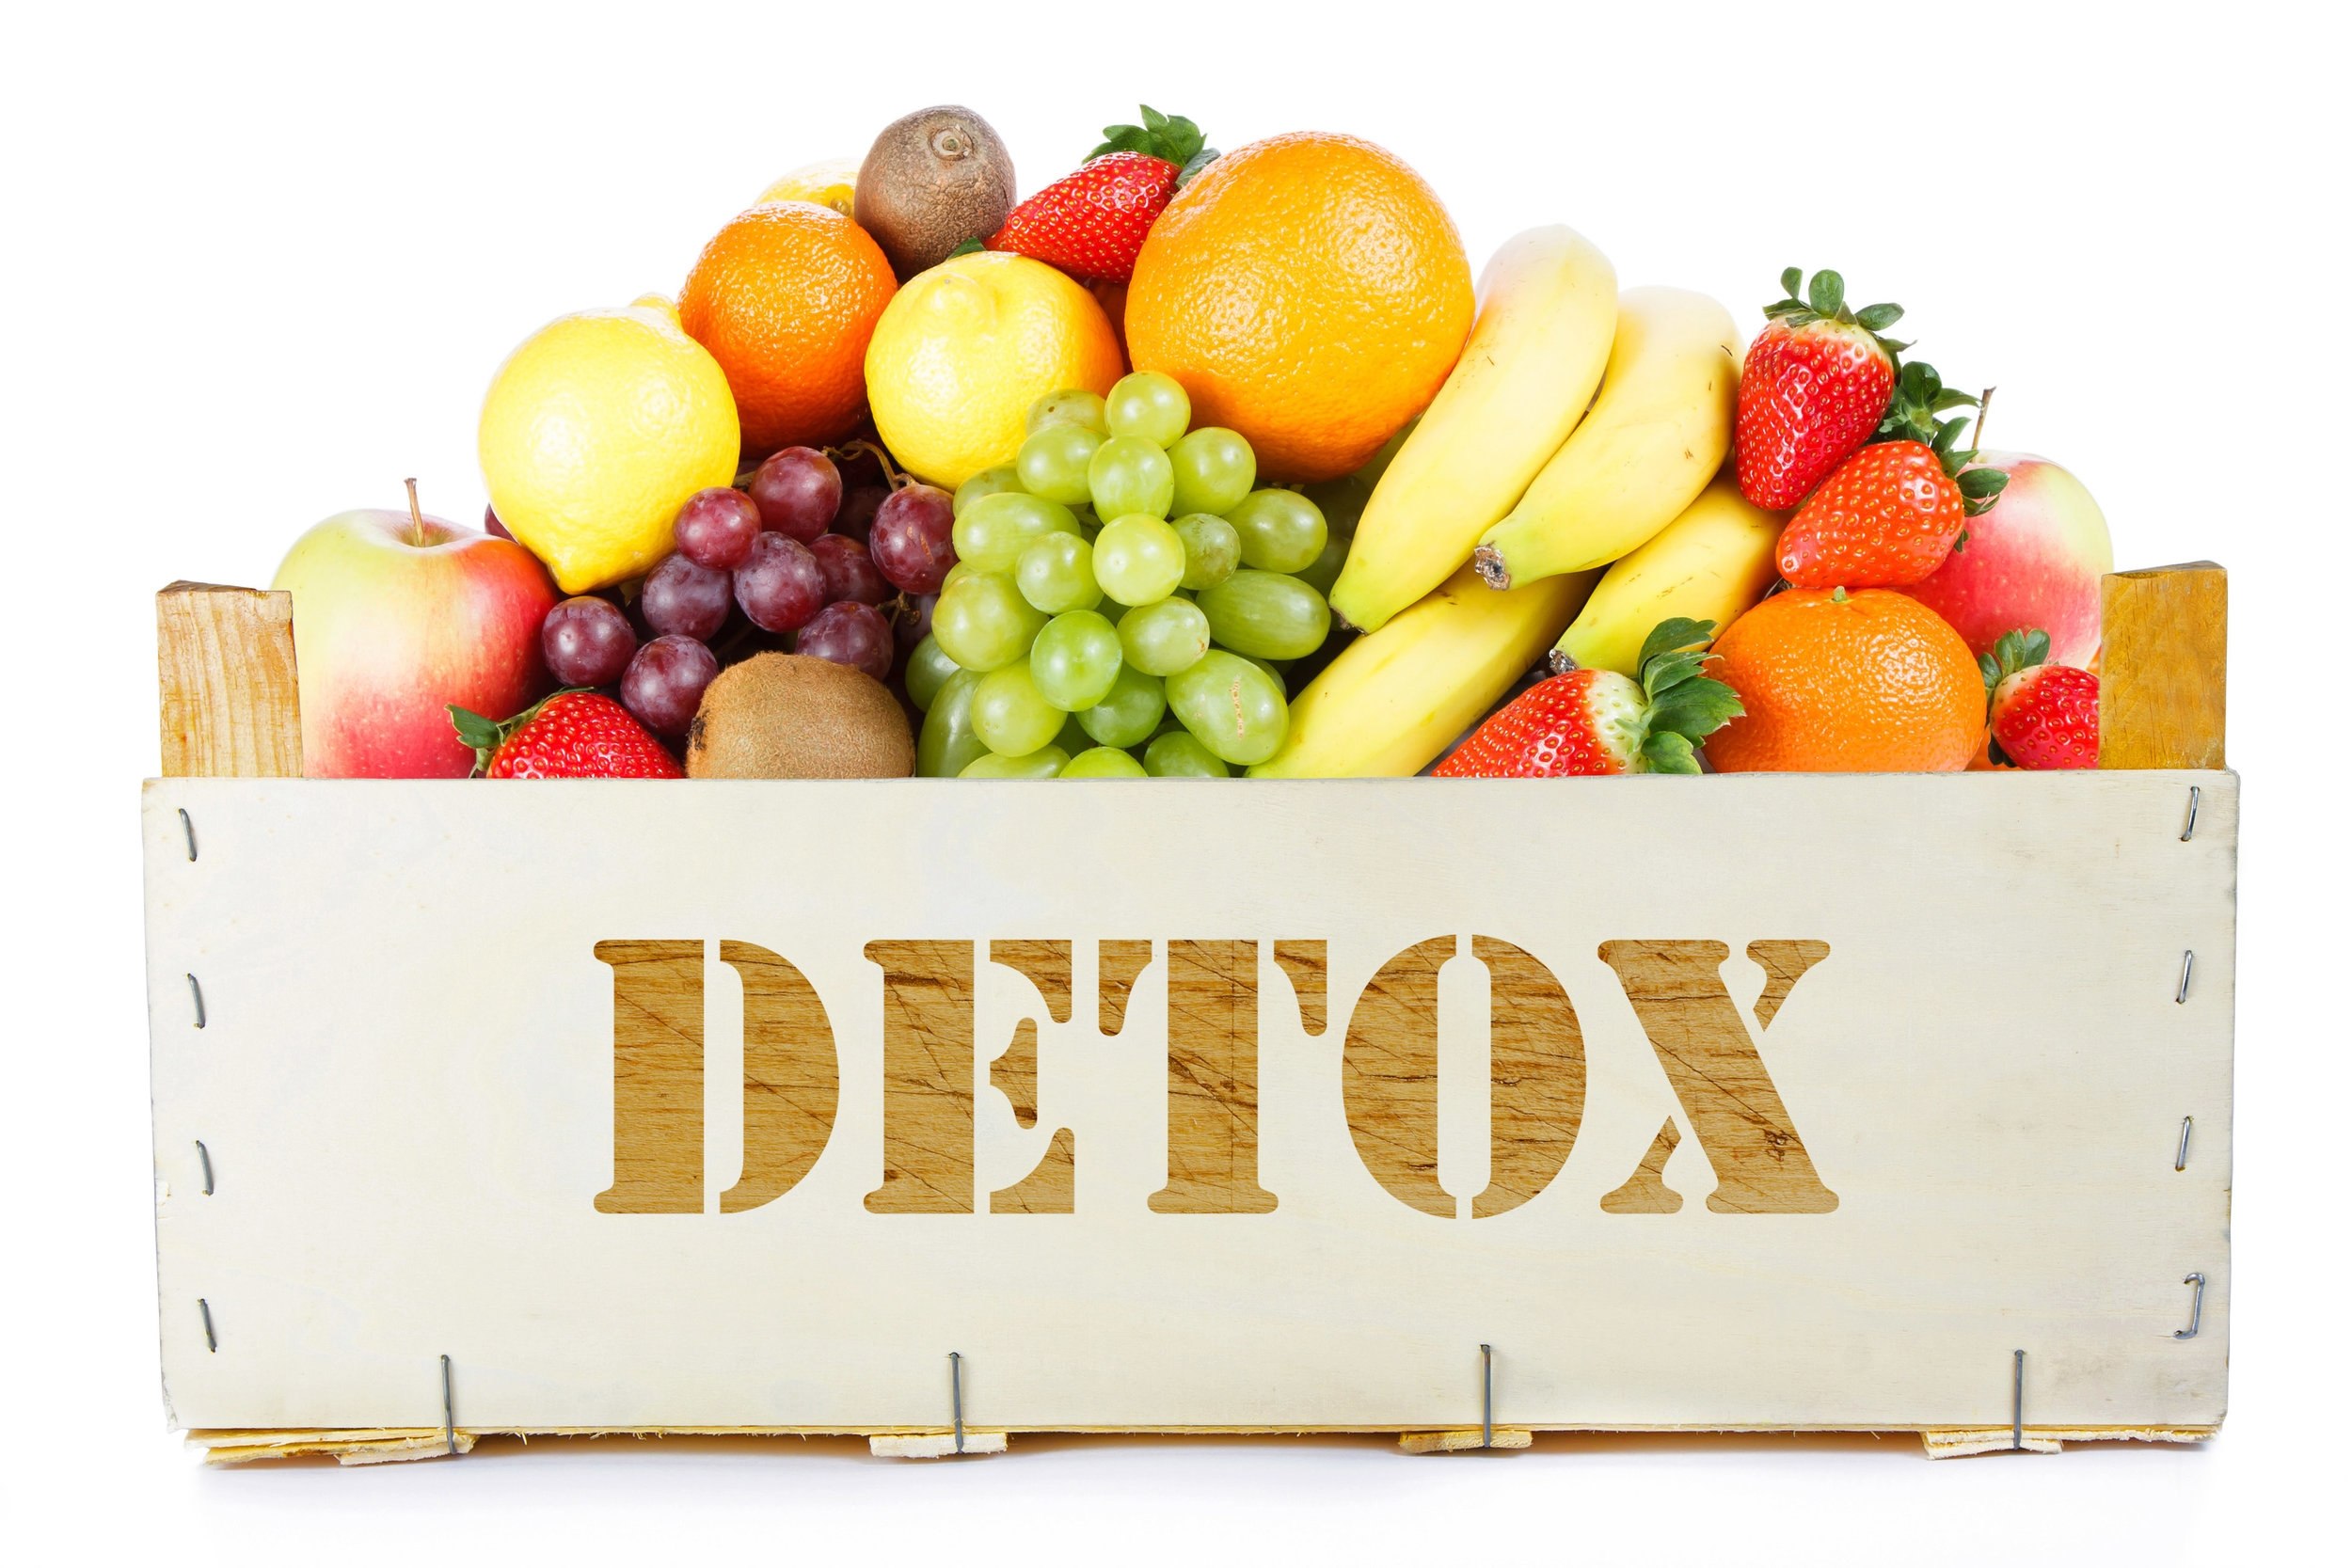 Detox Workshop 2017 with Cathy Plato 1/28/2017